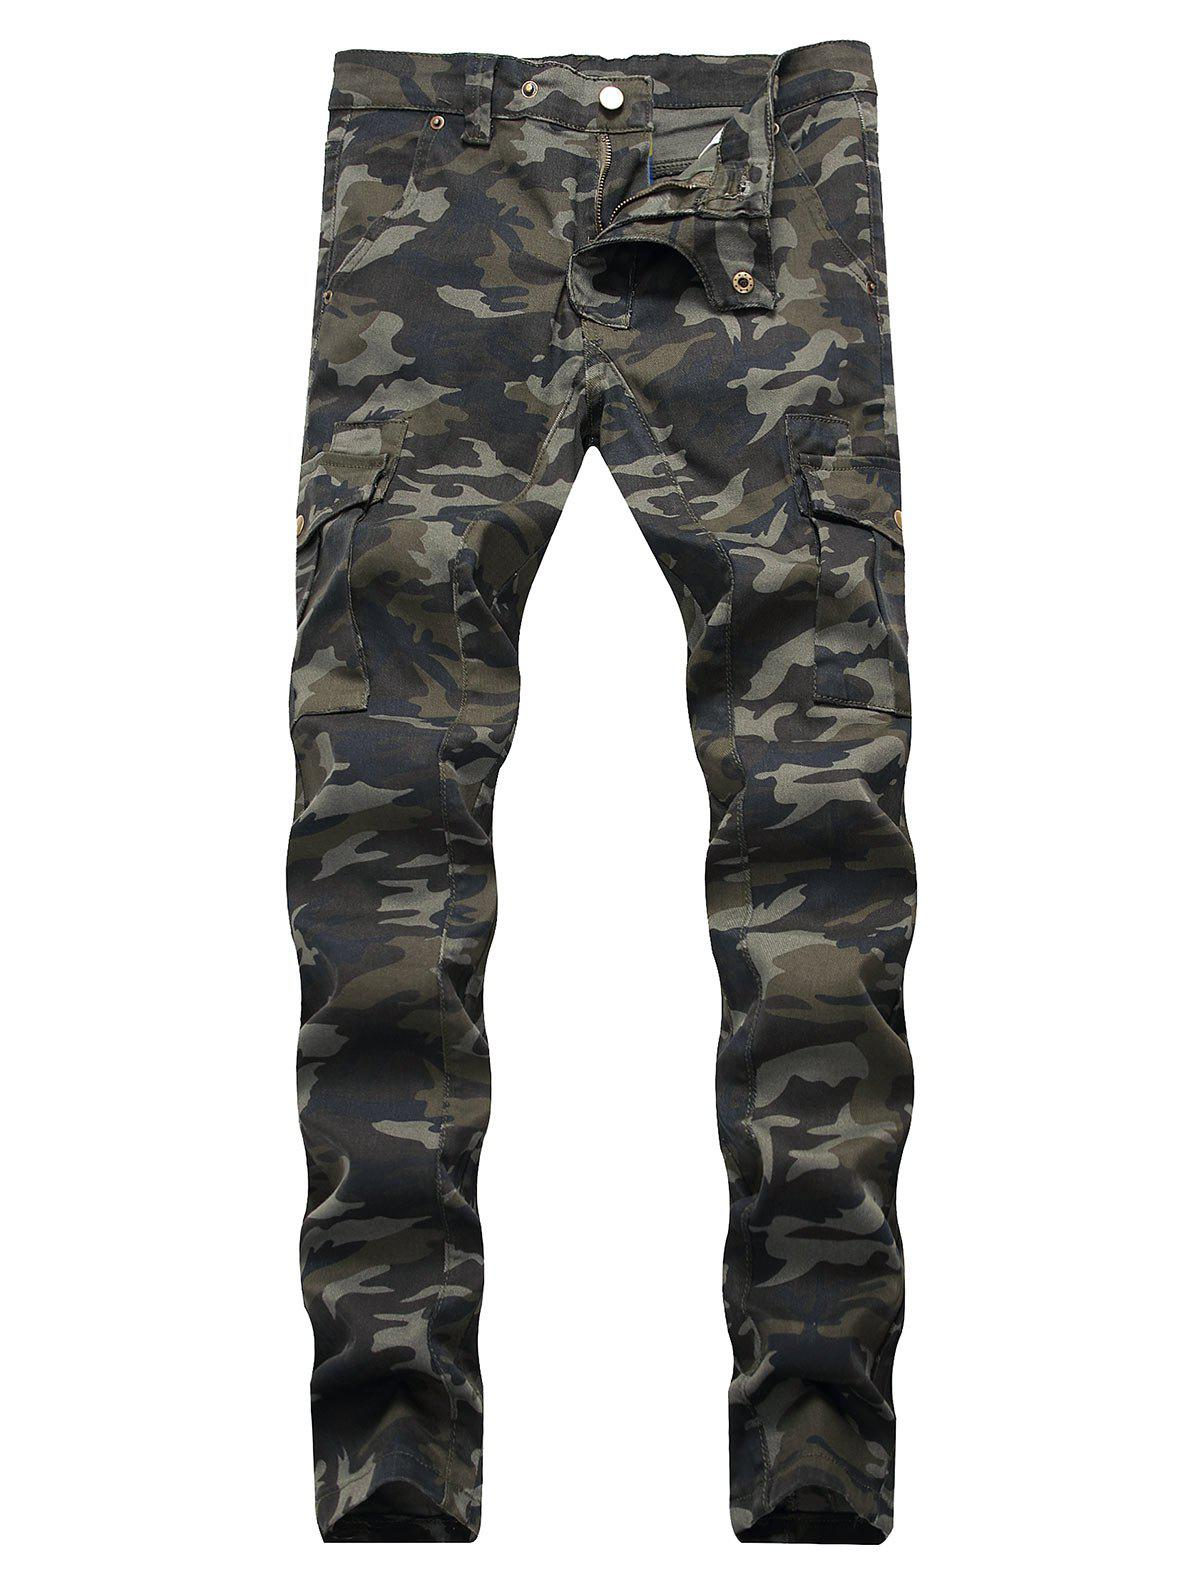 Camouflage Print Tapered Jeans - WOODLAND CAMOUFLAGE 36